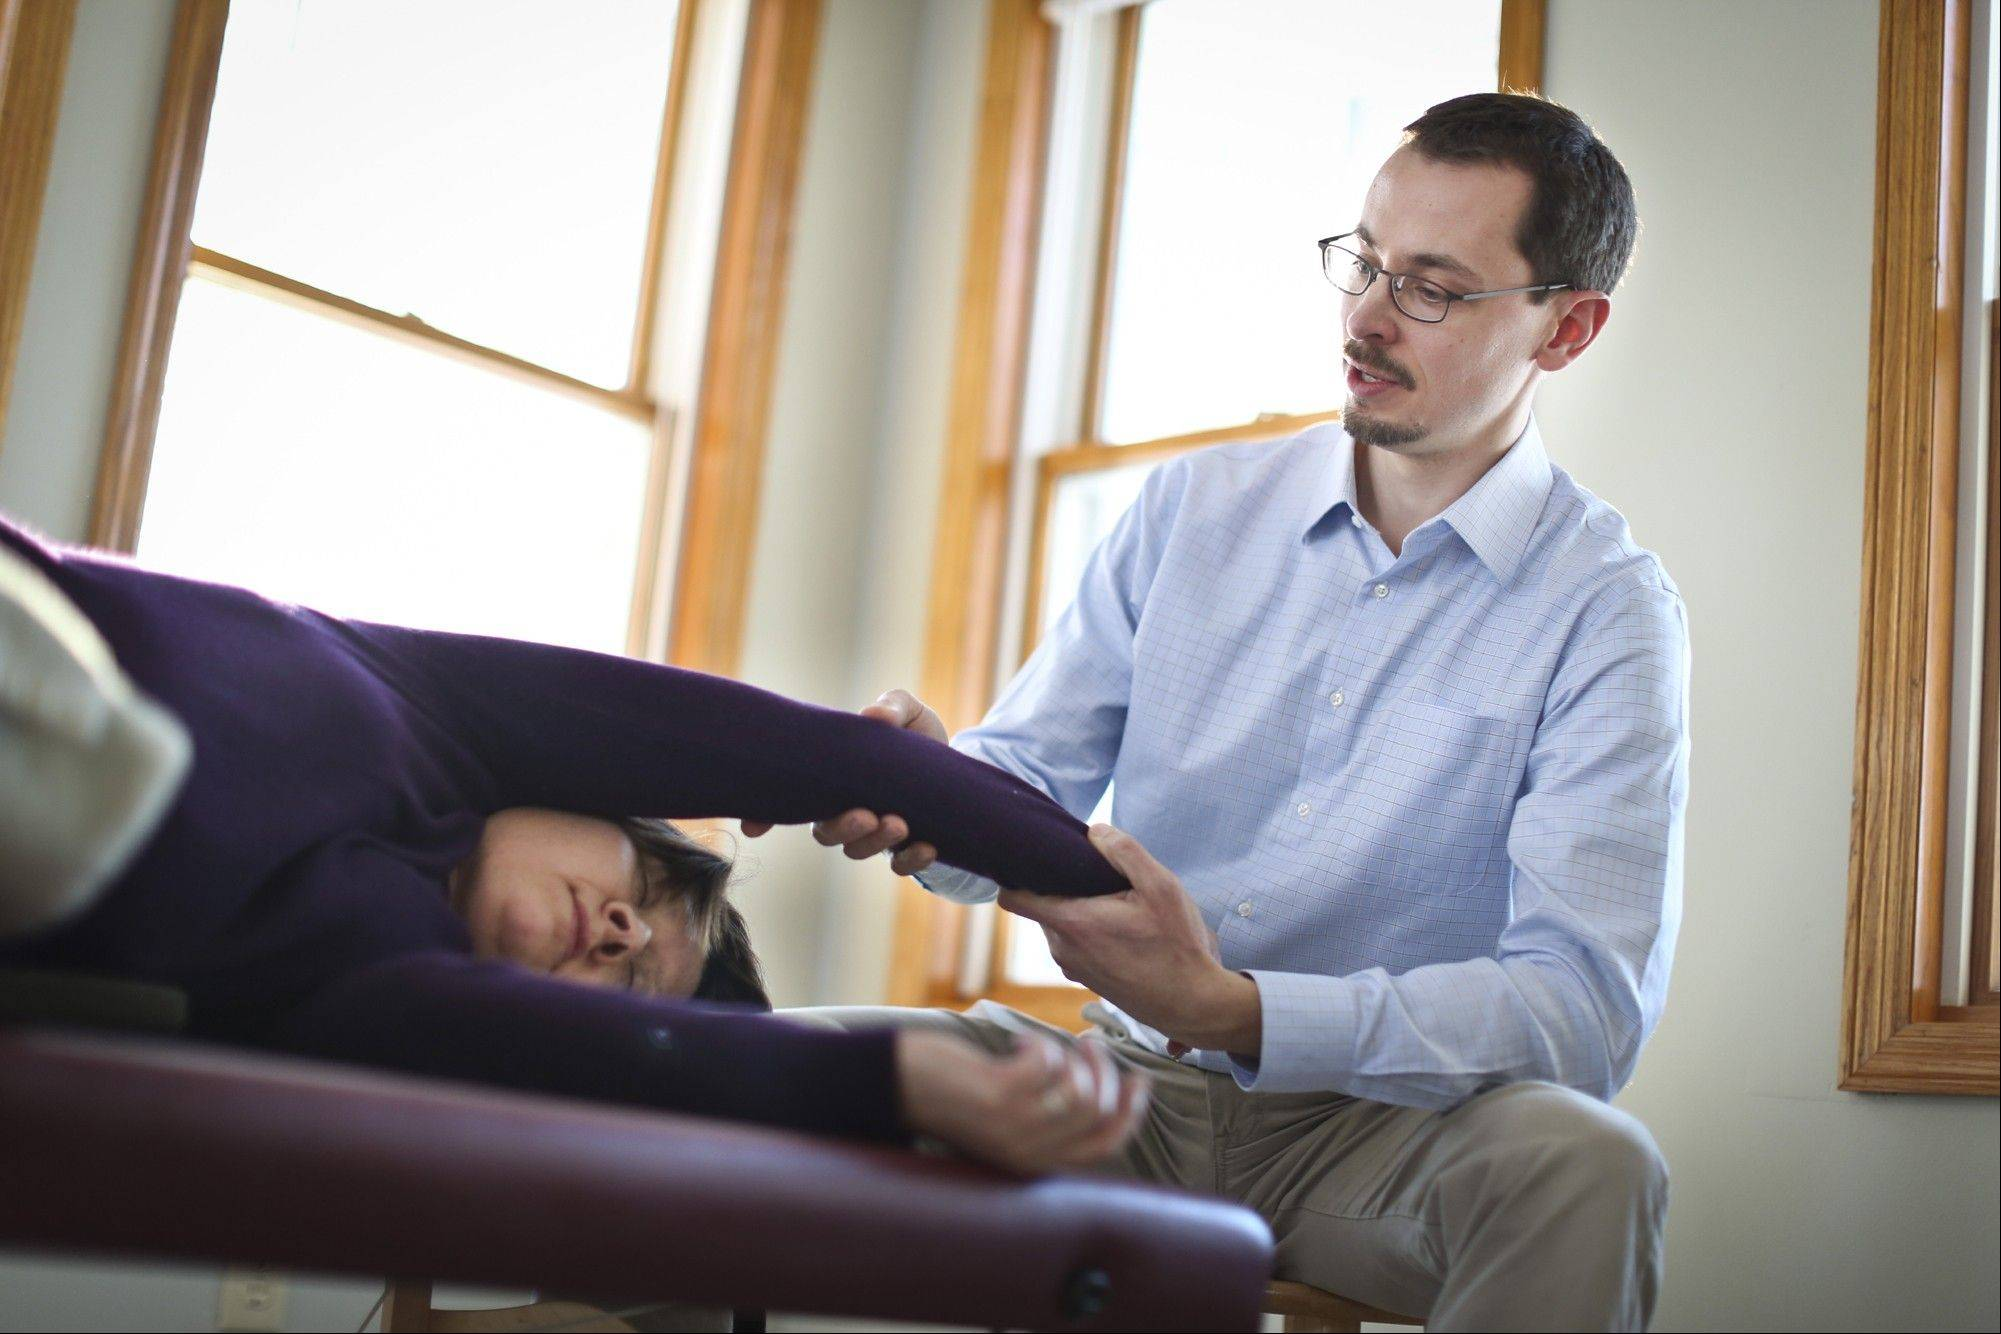 Feldenkrais practitioner Nick Strauss-Klein works with client Kathy Combs at his home.